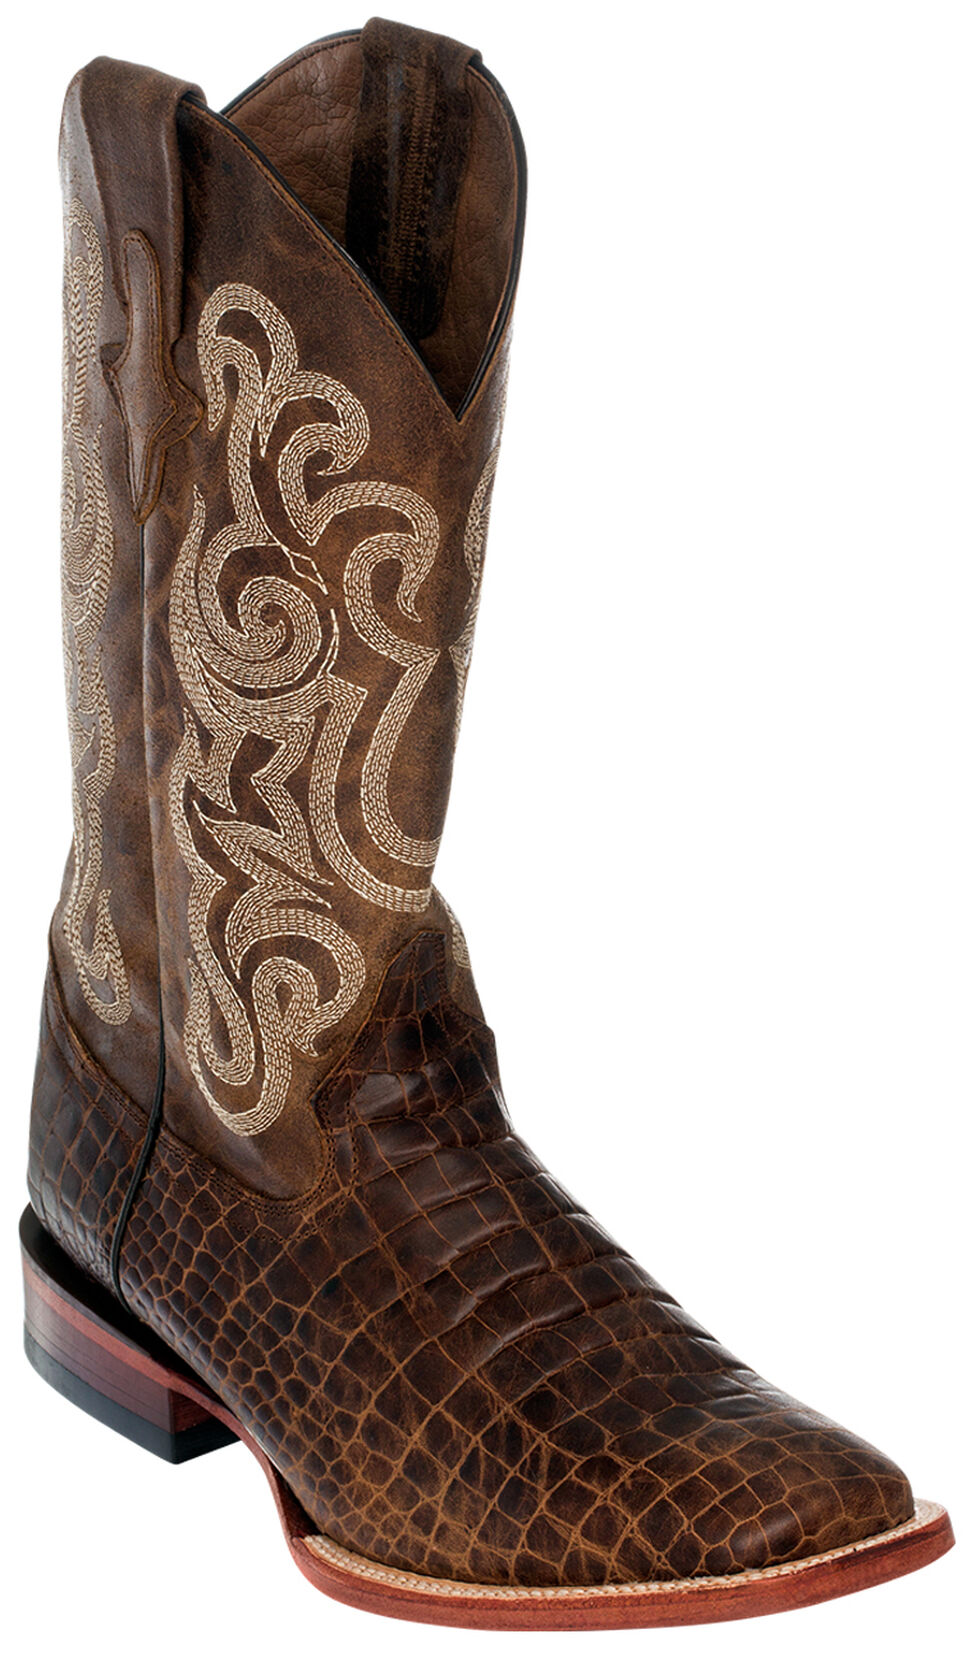 Ferrini Men's Brown Caiman Belly Print Western Boots - Square Toe , Brown, hi-res